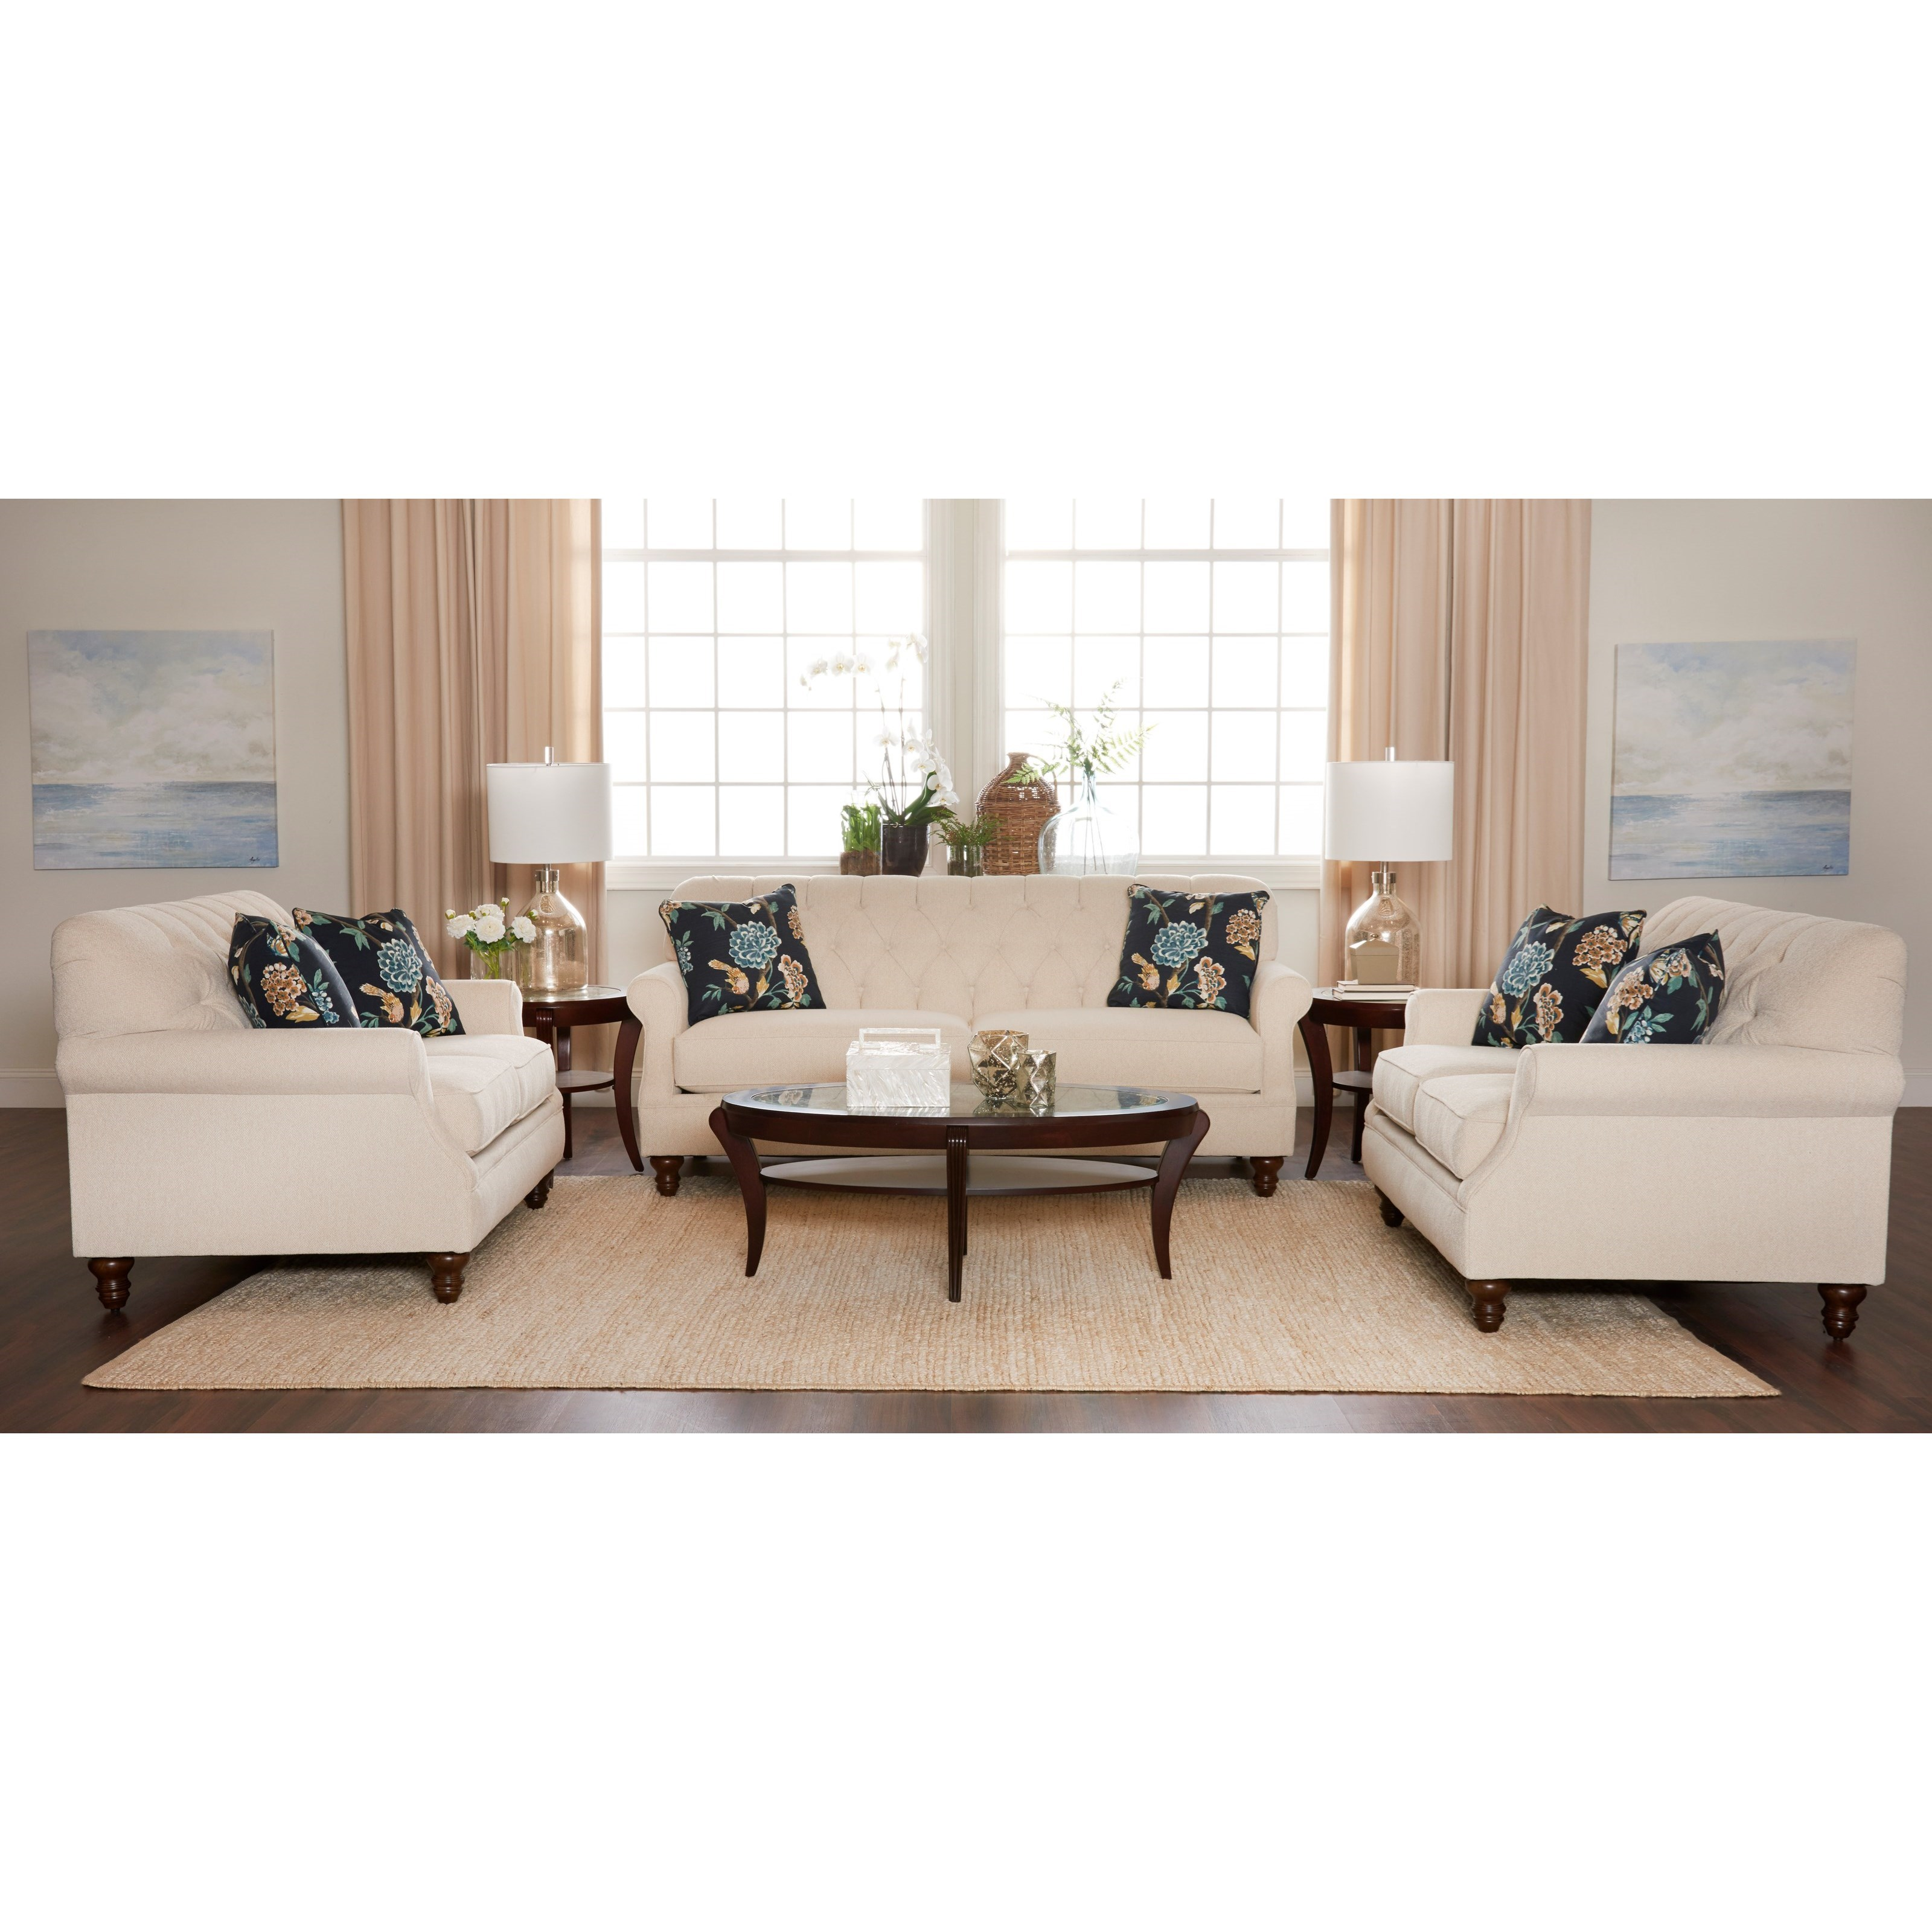 Ashley Furniture In Burbank: Klaussner Burbank Traditional Tufted Apartment-Size Sofa